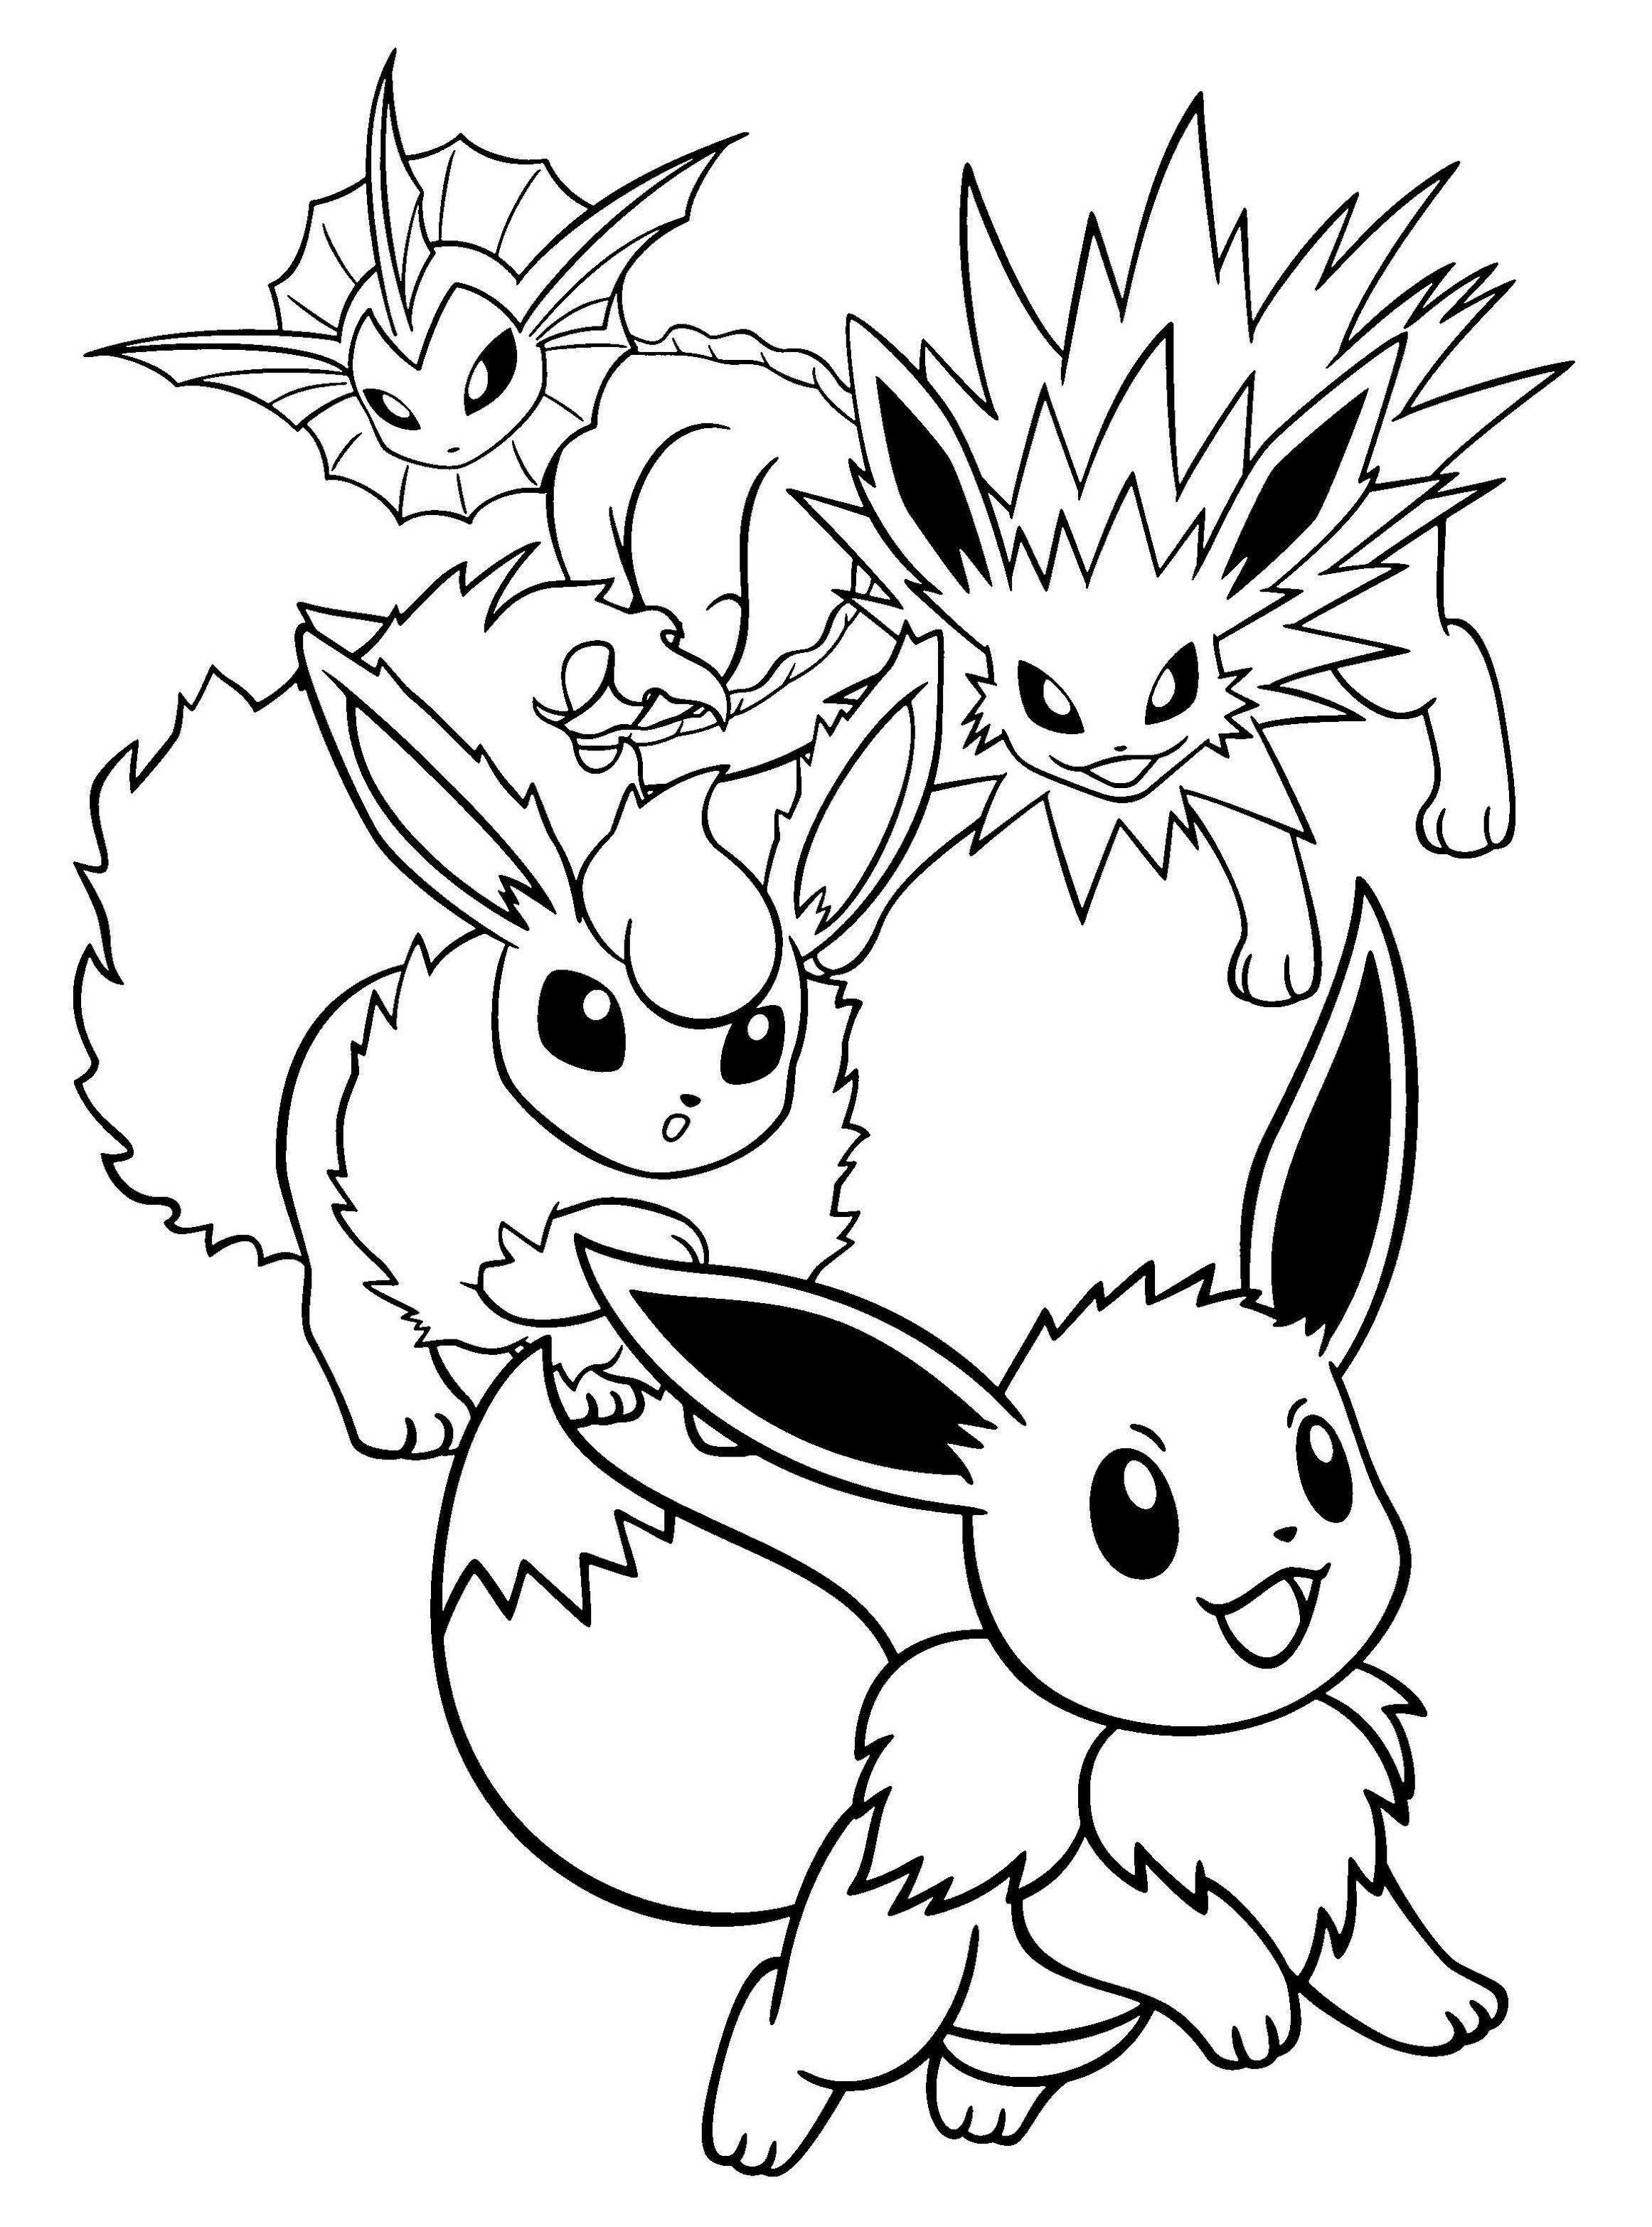 Pokemon All Eevee Evolutions Coloring Pages In 2020 Pikachu Coloring Page Pokemon Coloring Pages Pokemon Coloring